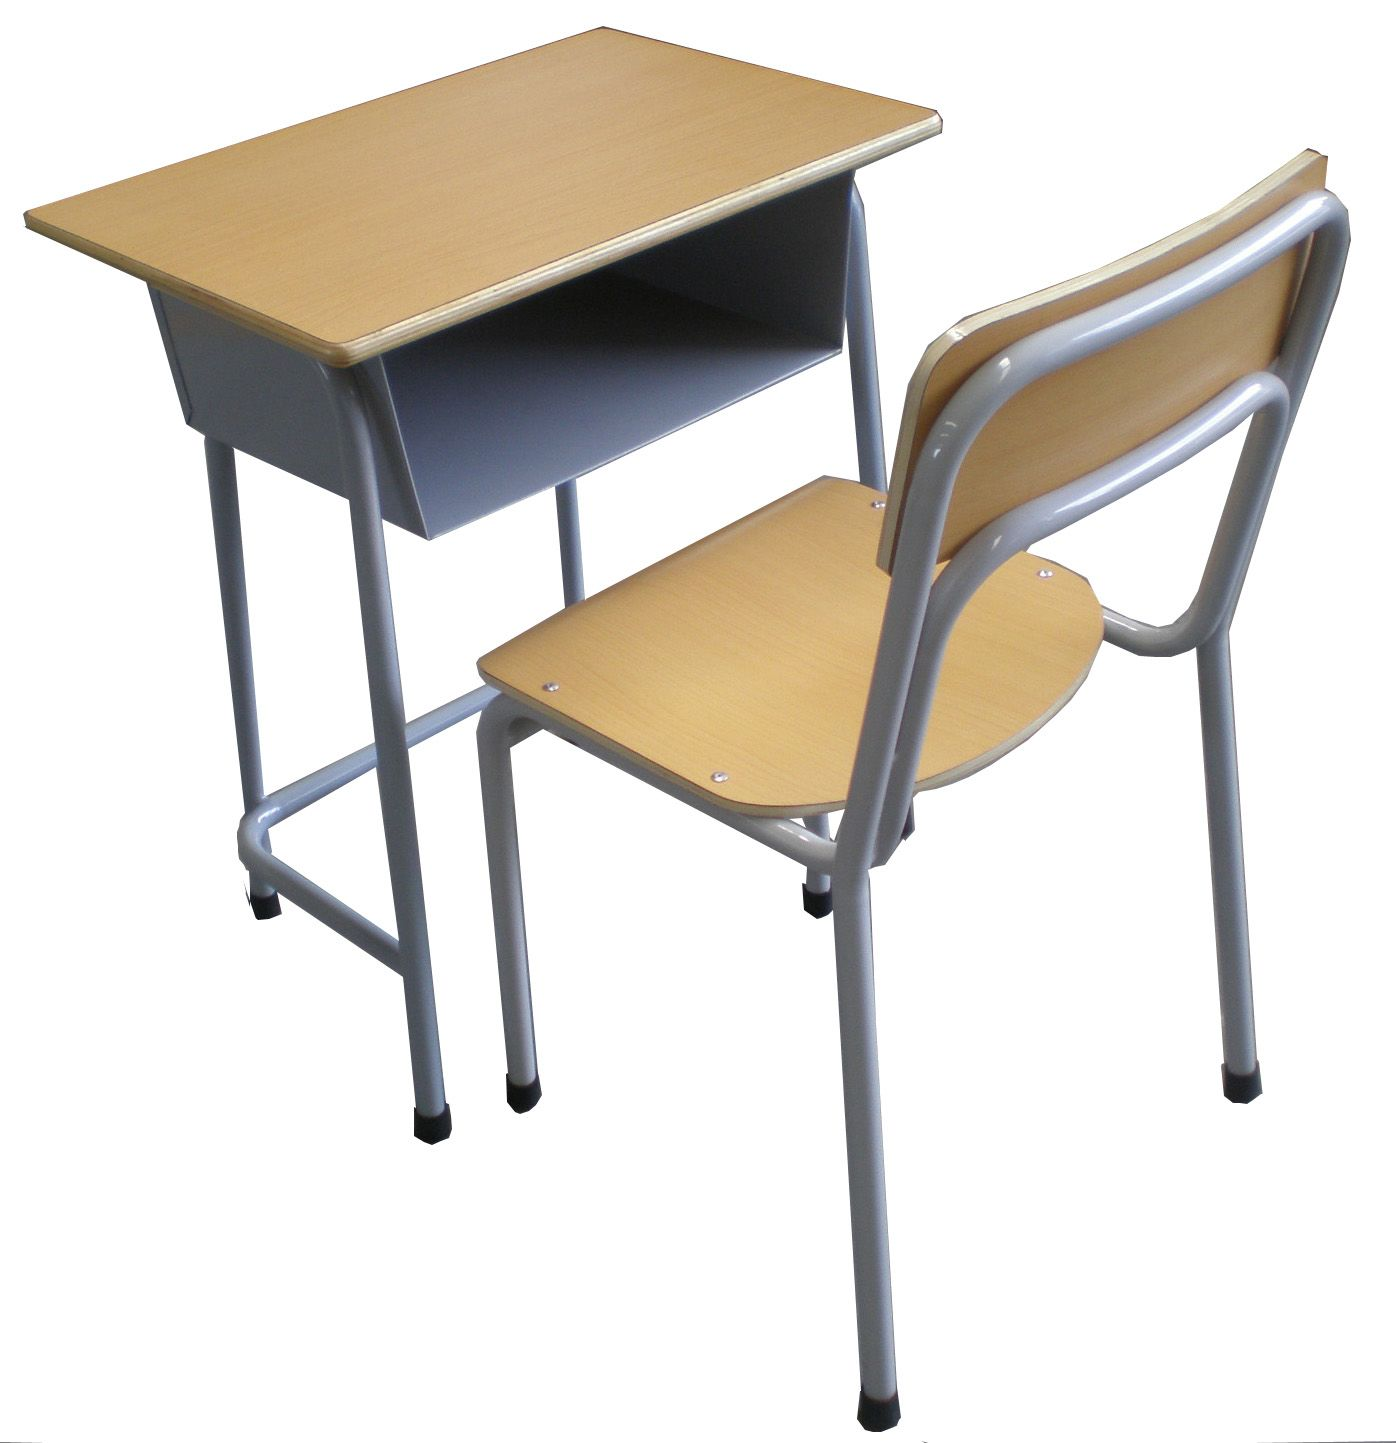 Desk And Chair Set Cheap Price Factory Study Desk Single School Student Desk And Chair Set For School Furniture Buy Single Desk And Chair School Furniture Study Desk